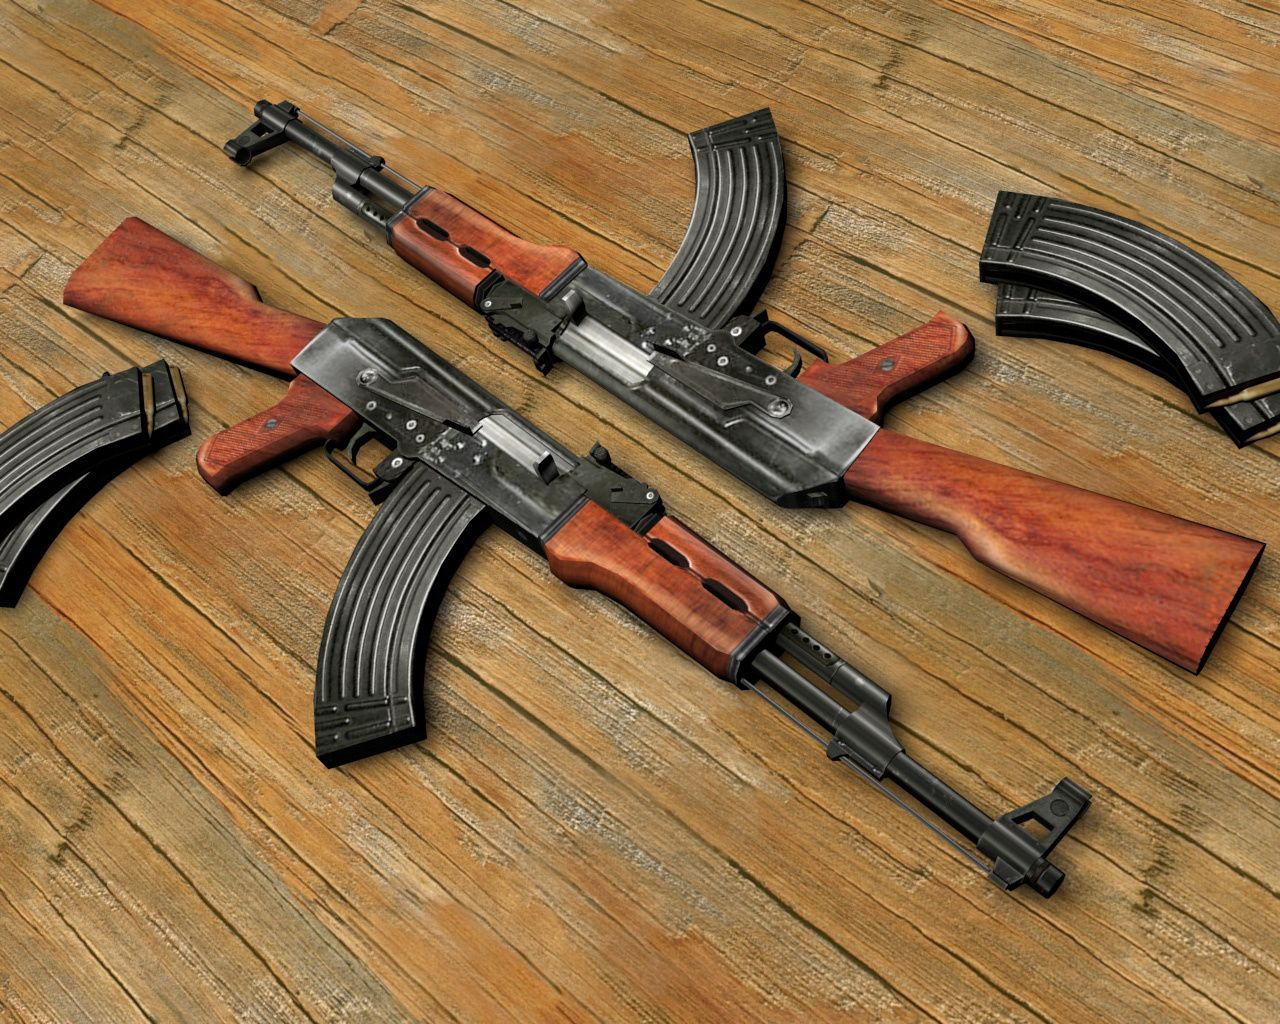 Image result for images of ak 47 rifle